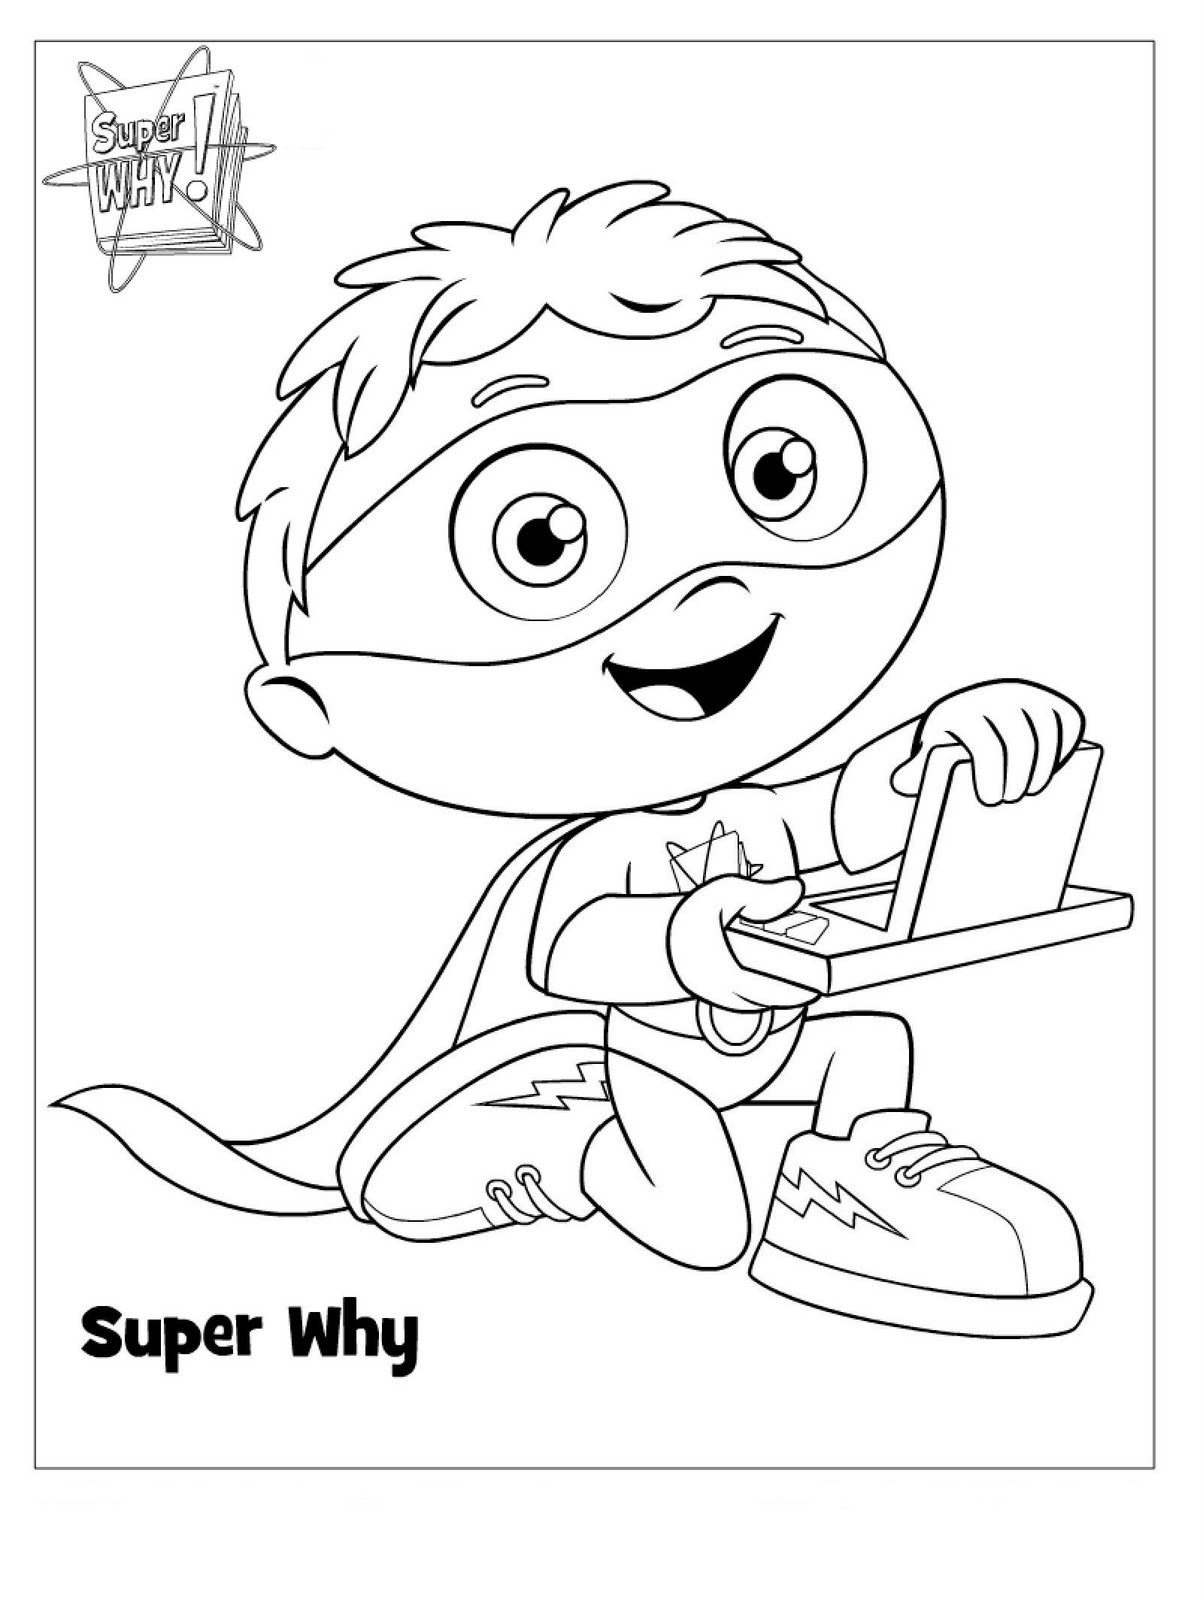 Super why coloring pages best coloring pages for kids for Coloring pages